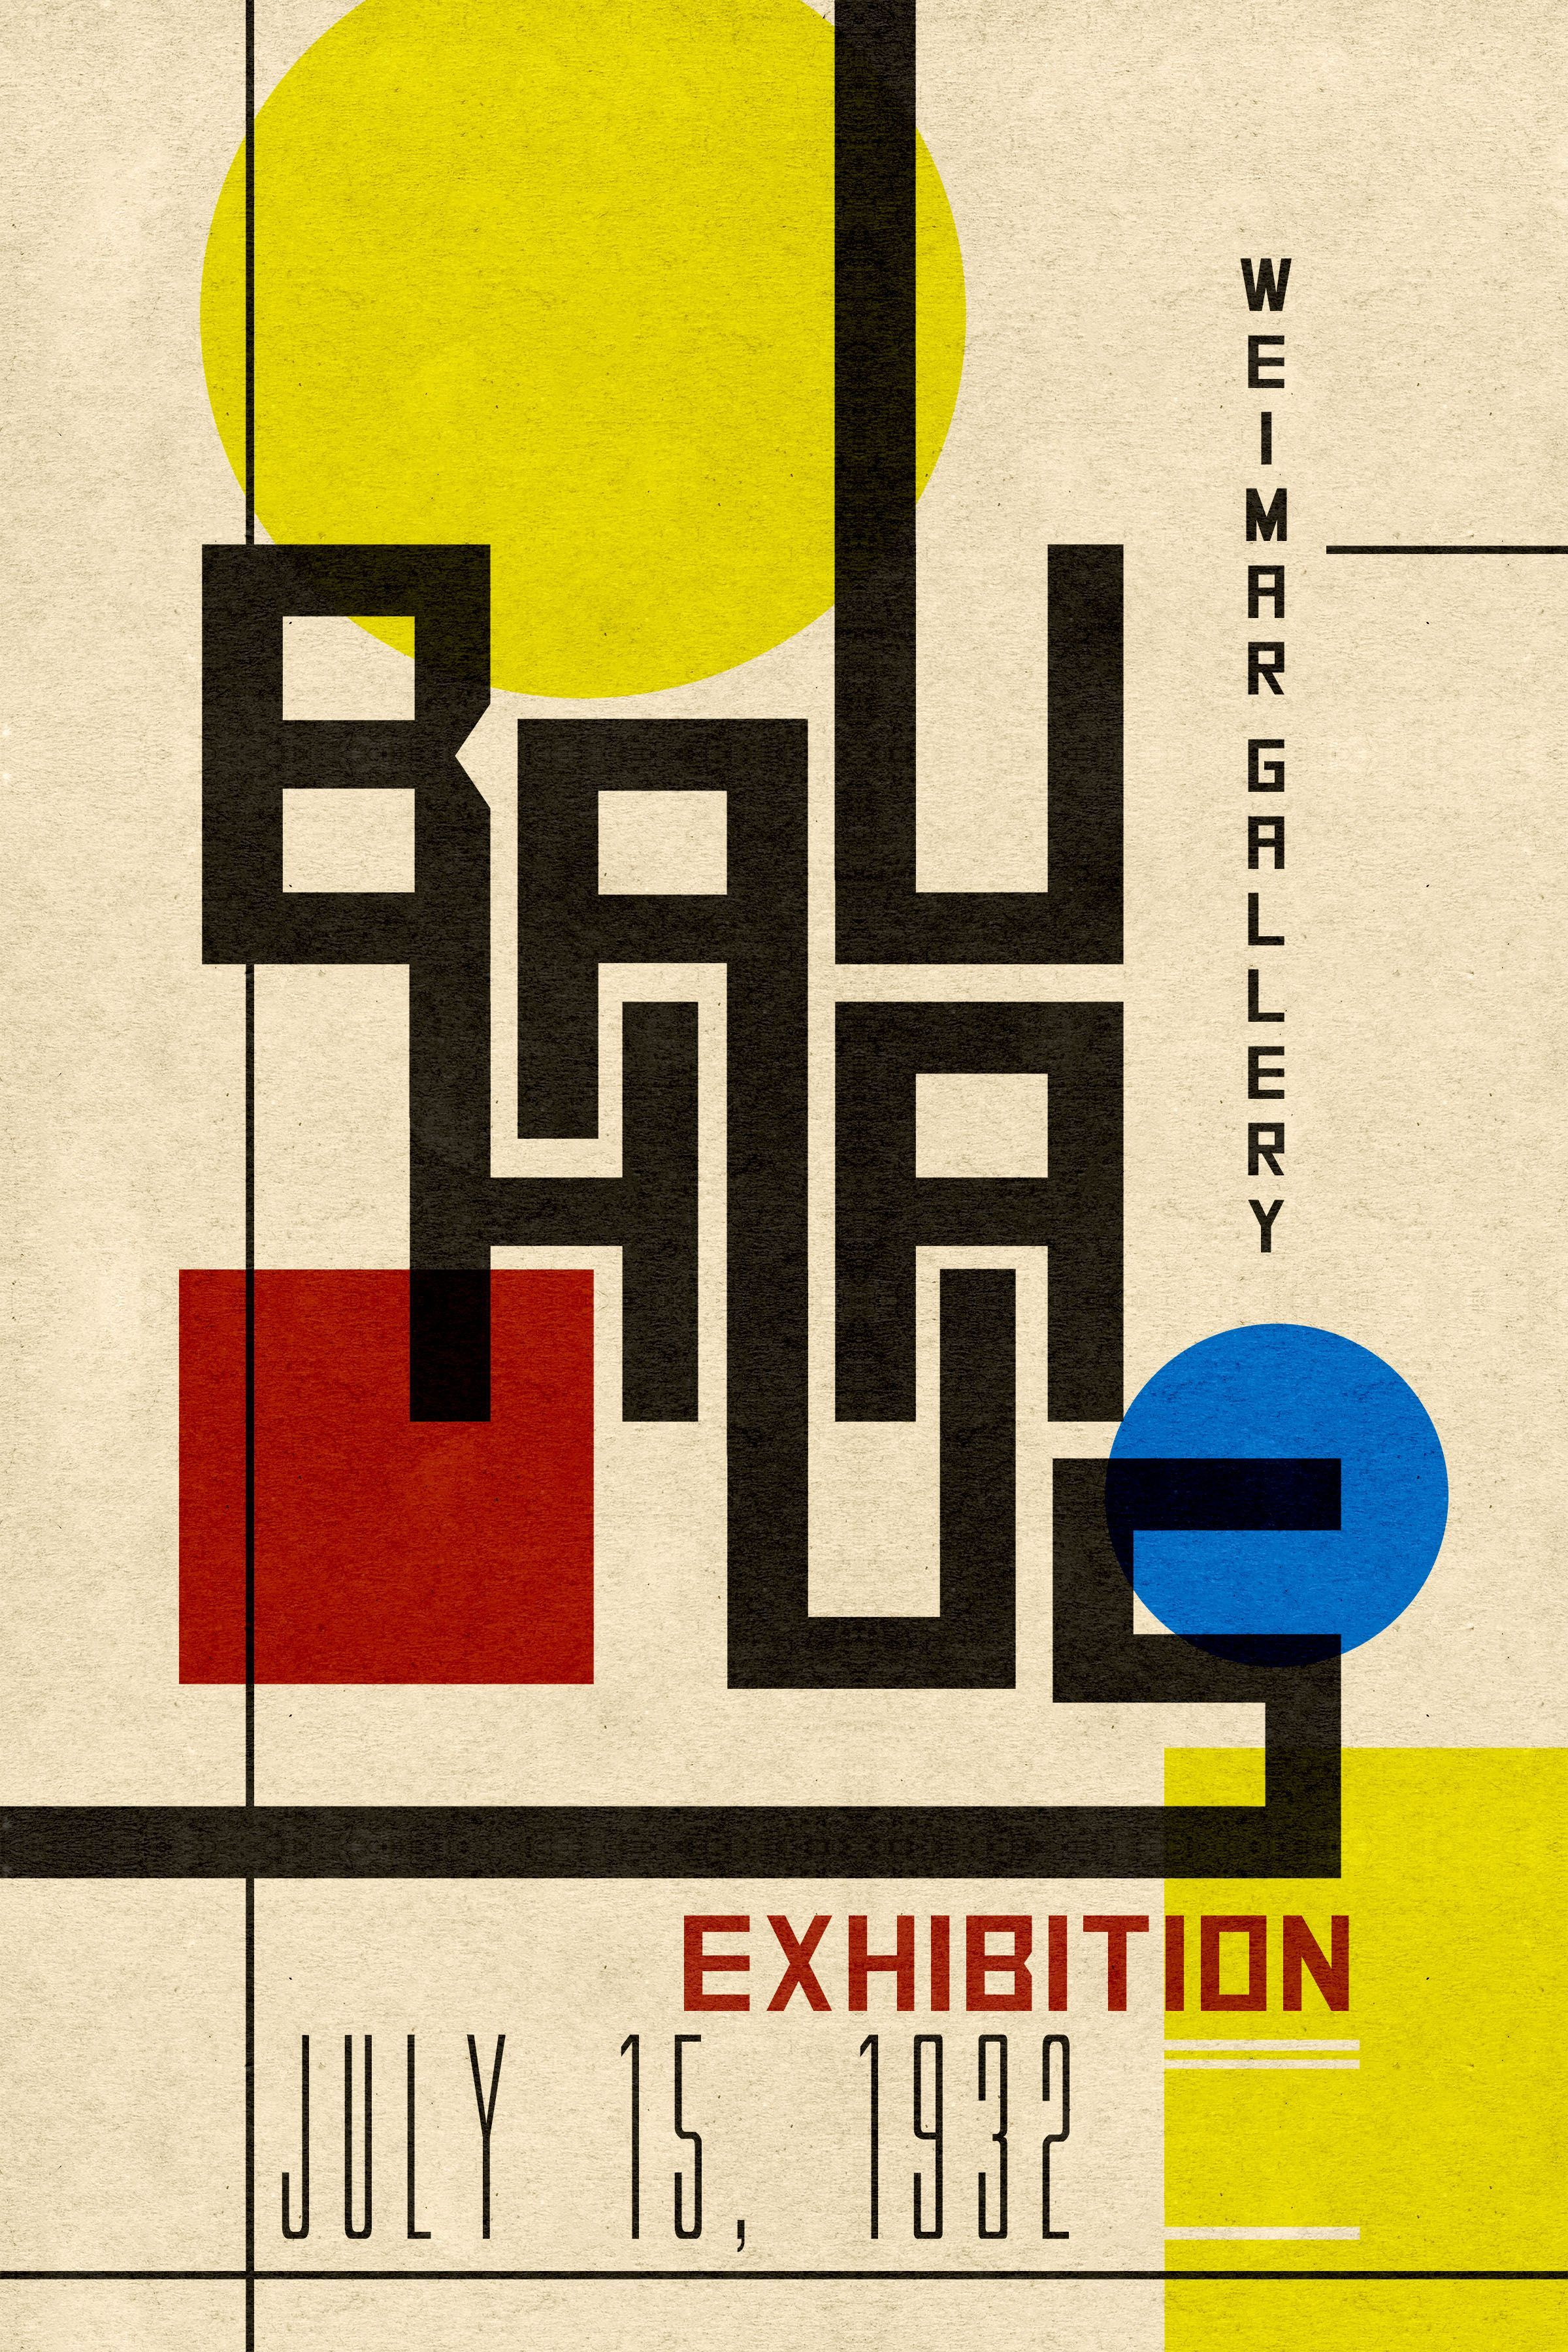 Bauhaus Poster posterdesignsoftware (With images